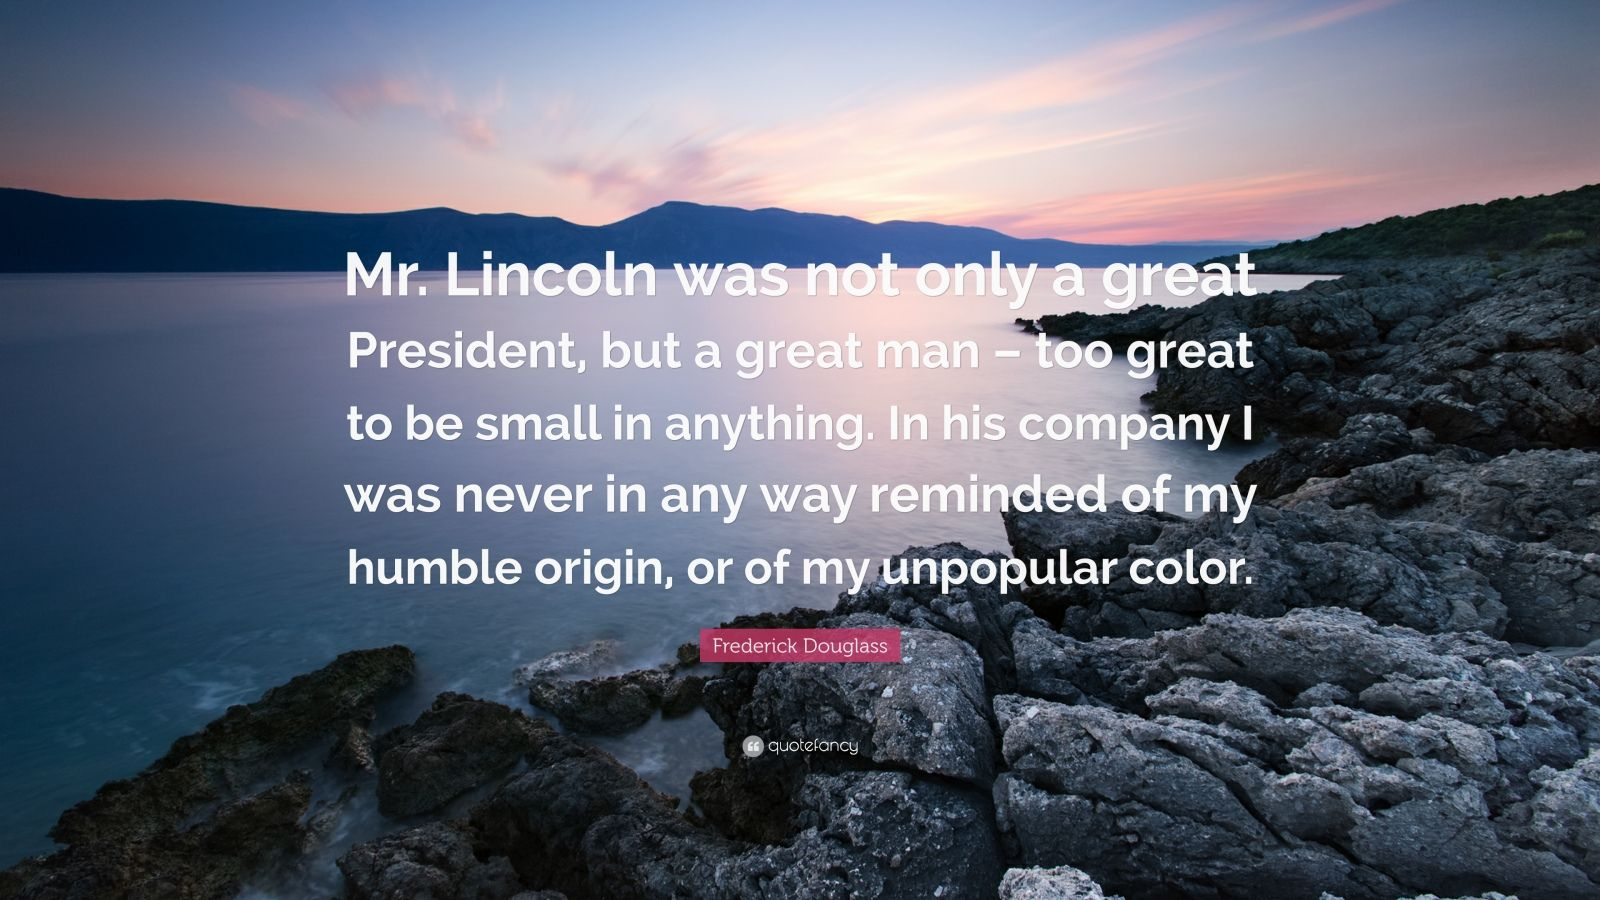 """Frederick Douglass Quote: """"Mr. Lincoln was not only a great President, but a great man – too great to be small in anything. In his company I was never in any way reminded of my humble origin, or of my unpopular color."""""""